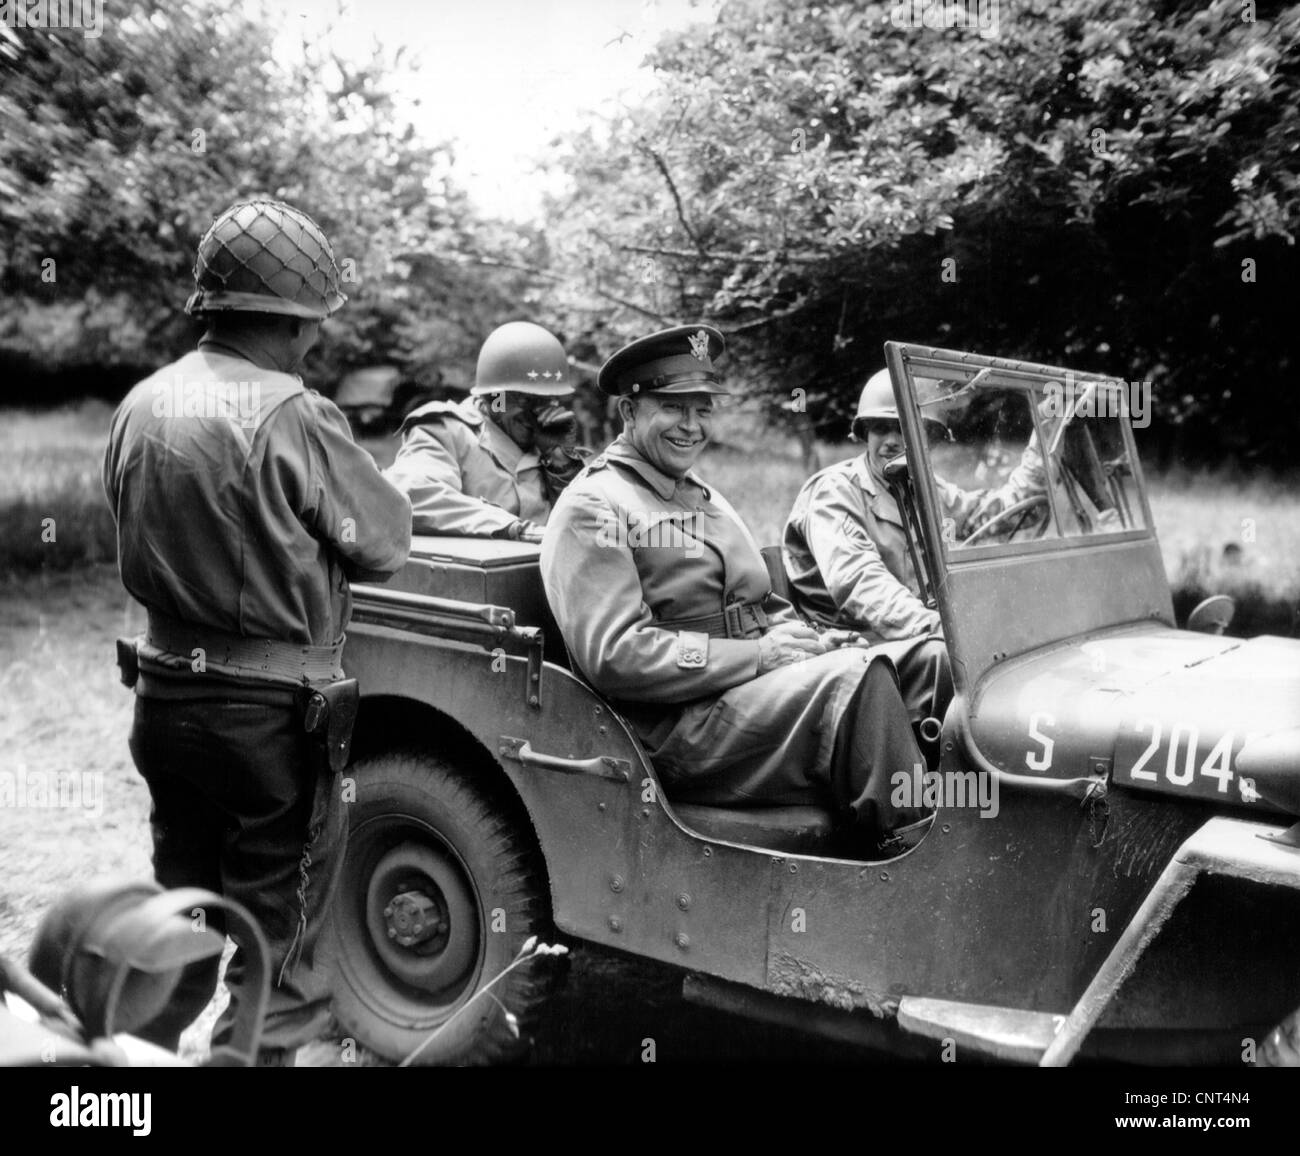 Vintage World War II photo of General Dwight D. Eisenhower sitting in a jeep talking with other officers. - Stock Image